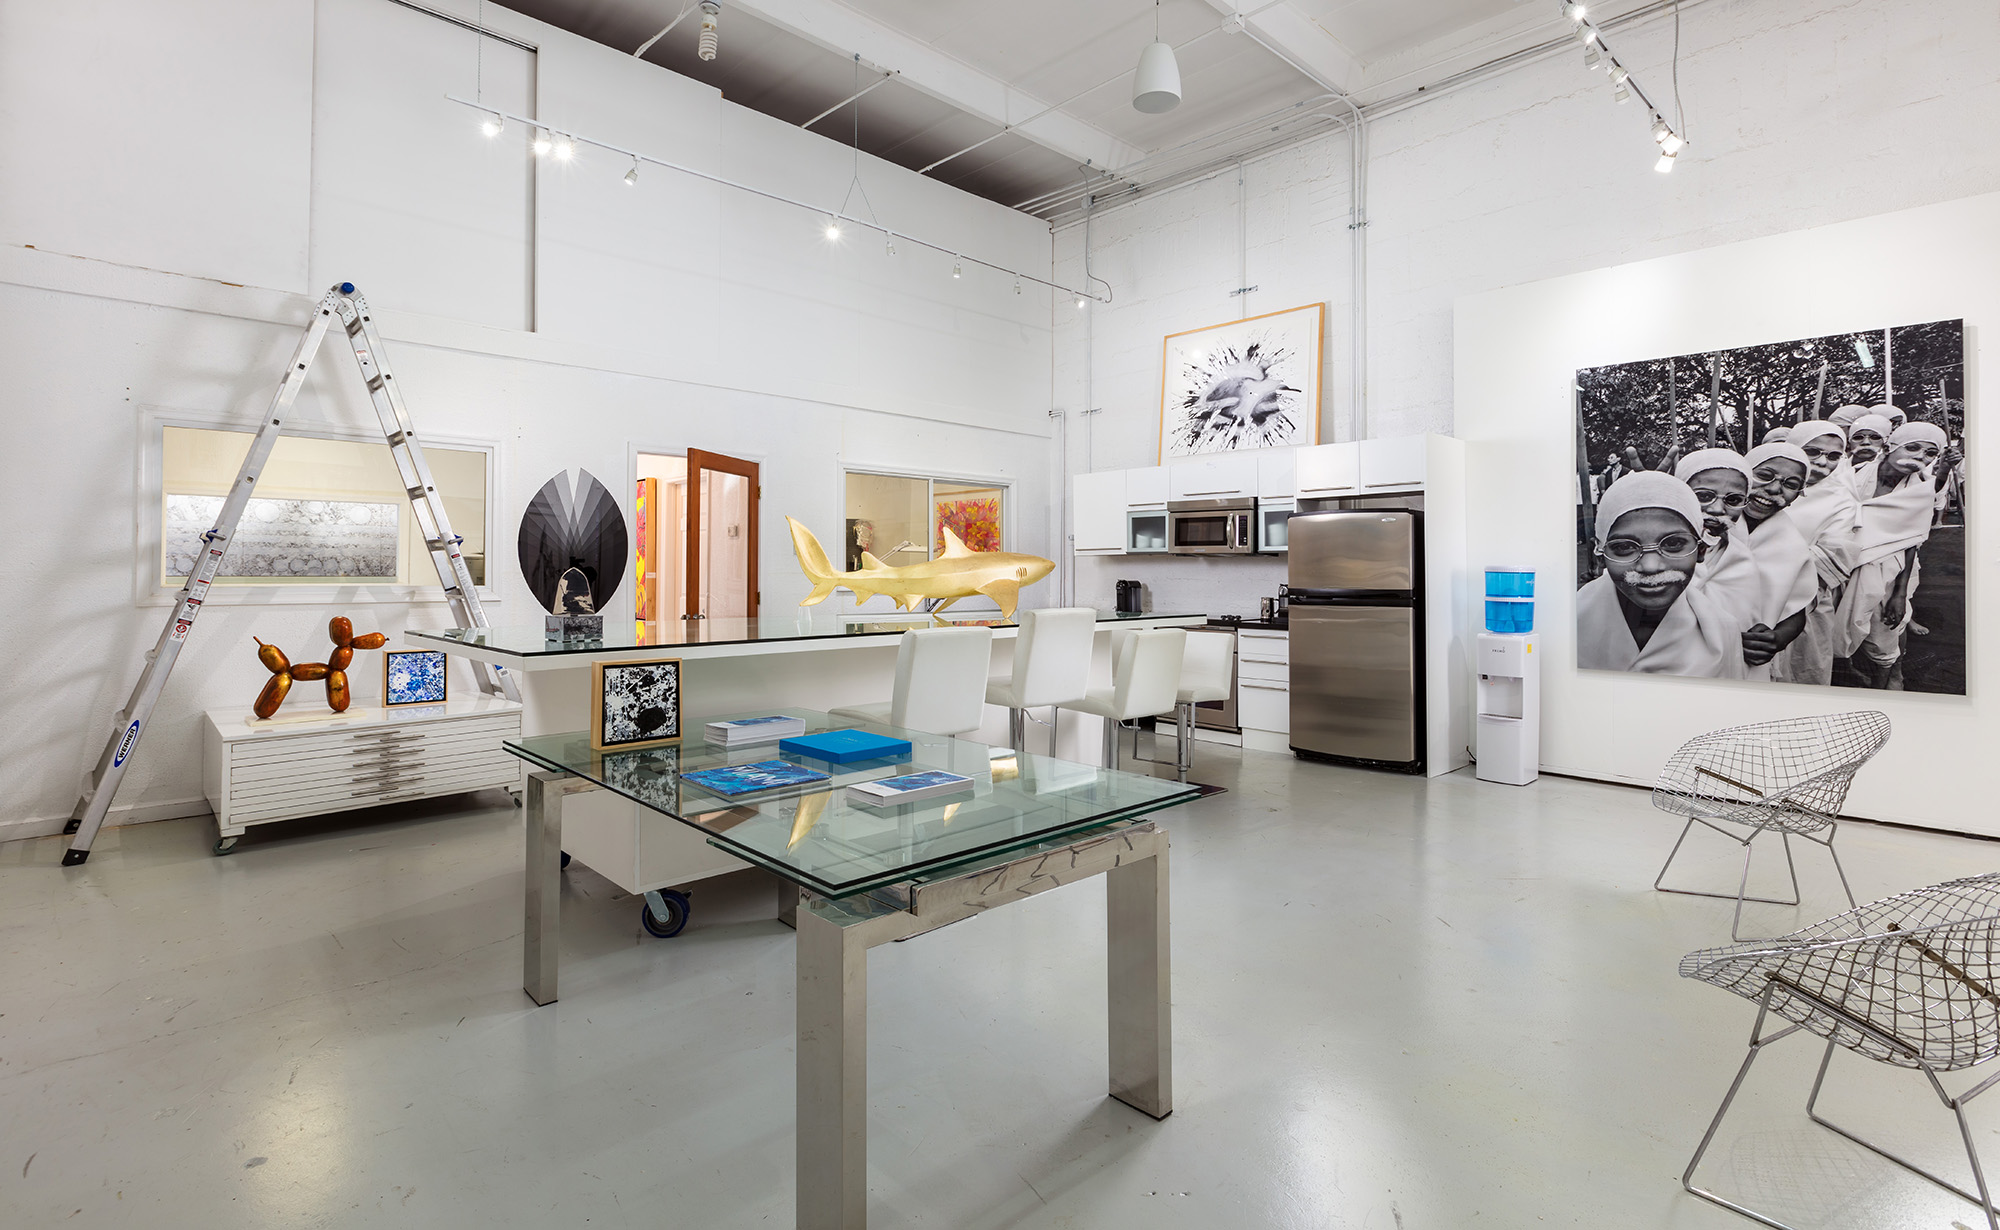 Manolis Projects Studio/Gallery, Miami, FL. Photography by Kim Sargent.